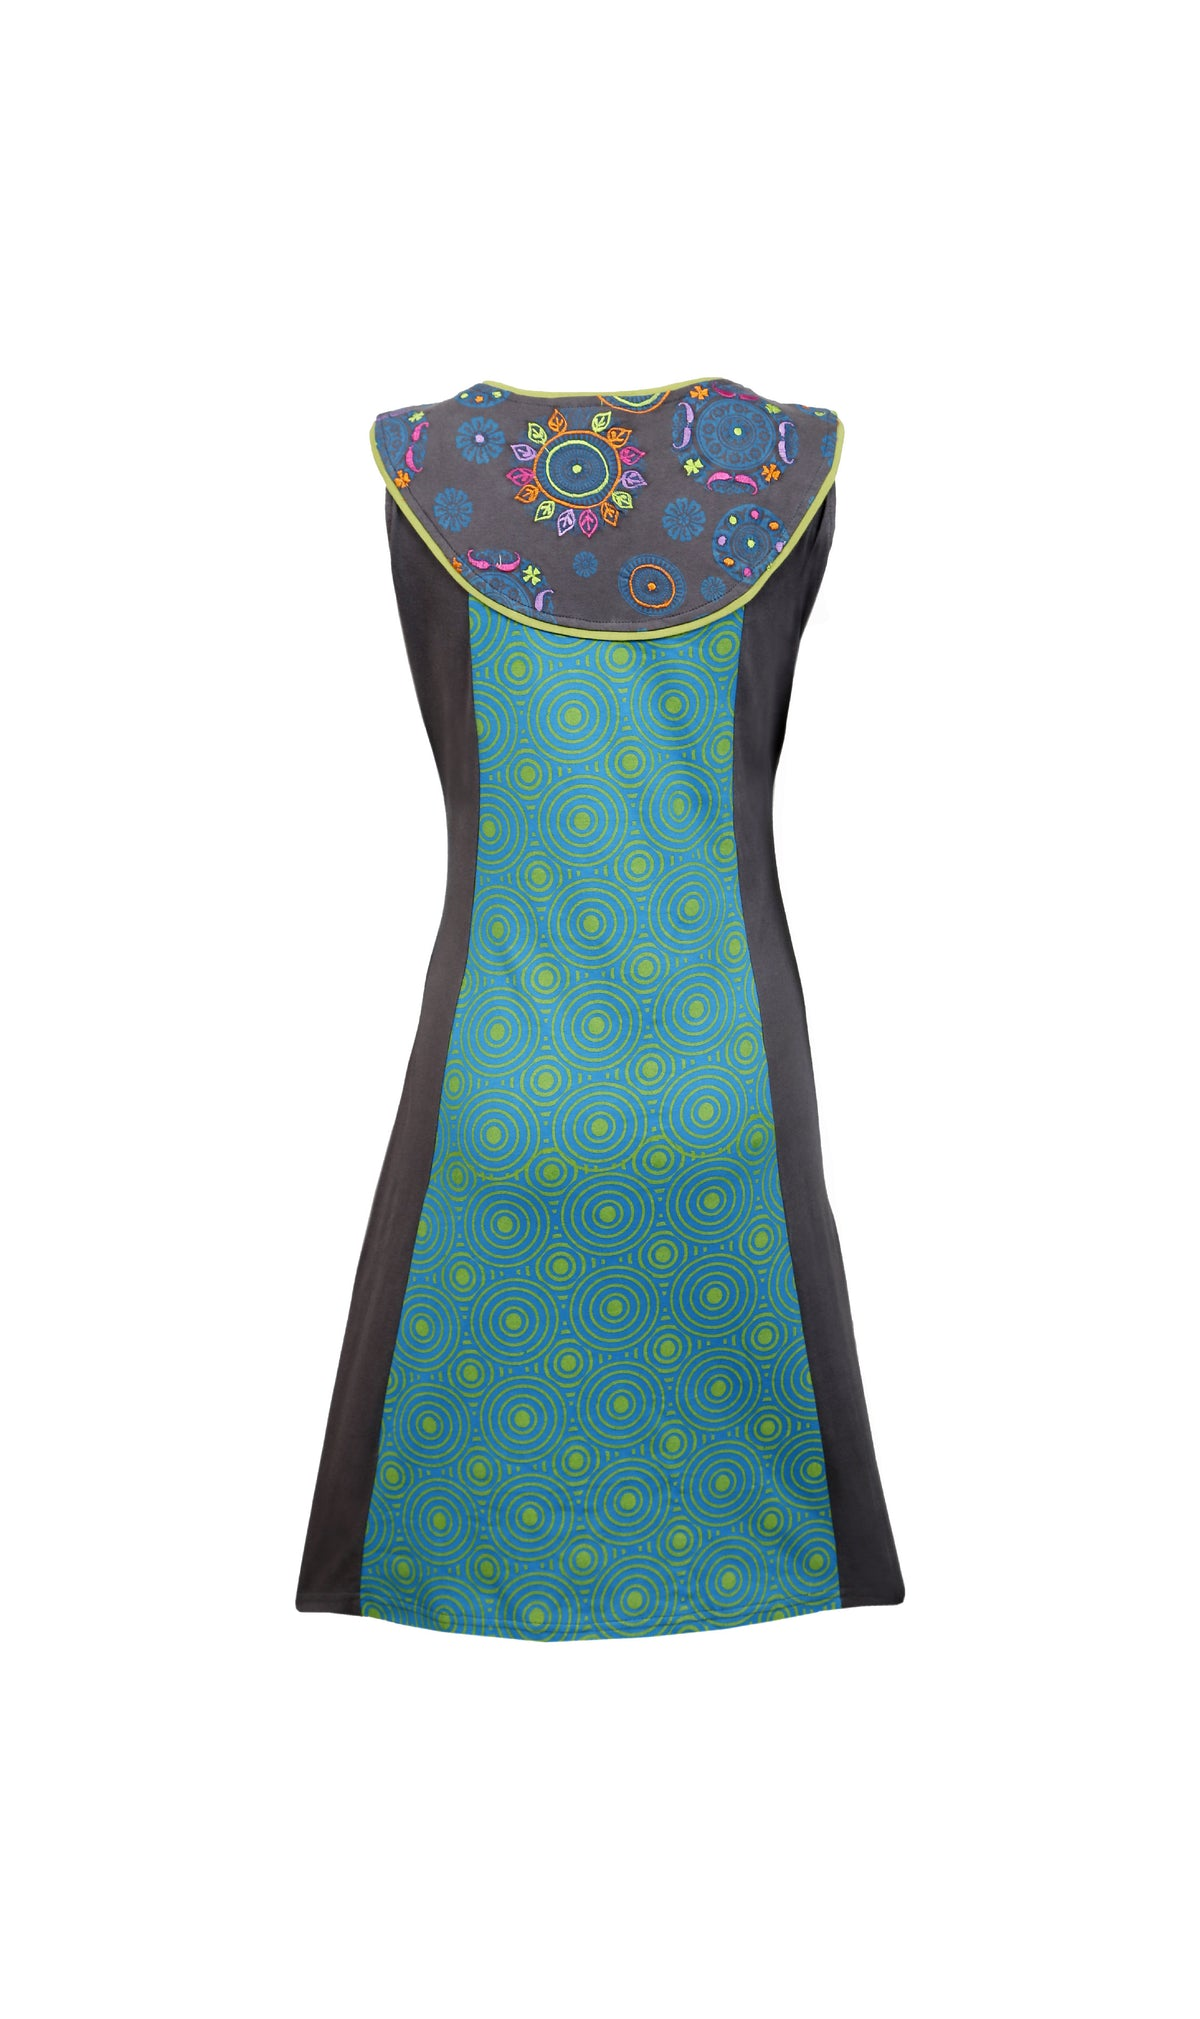 Ladies sleeveless dress with neckline embroidery and circular pattern - Craze Trade Limited